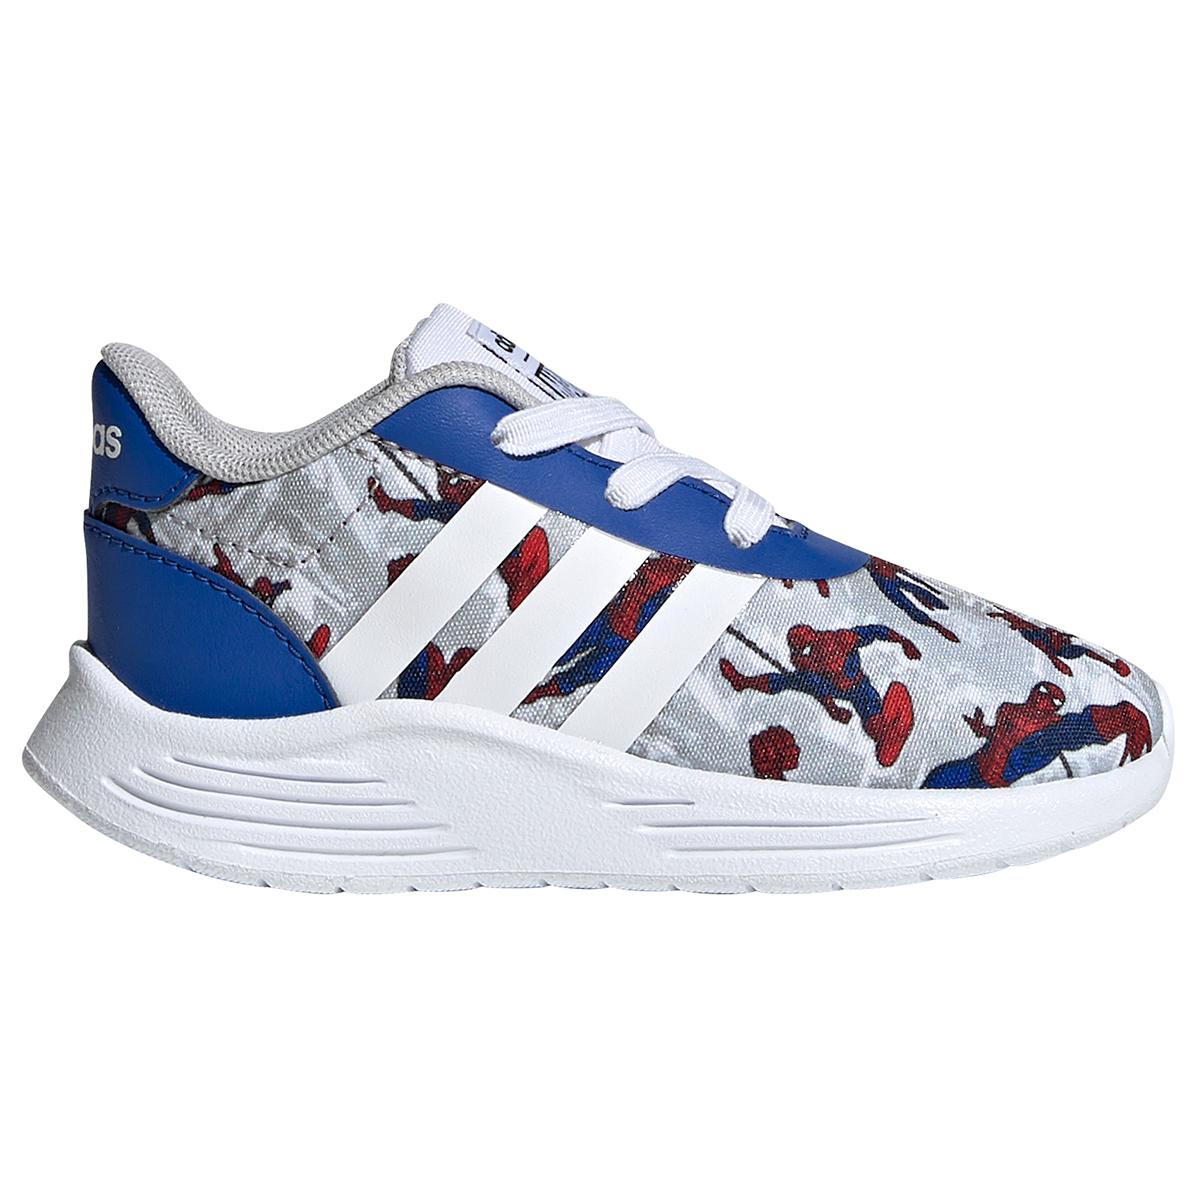 Adidas Infant/toddler Boys' Lite Racer 2.0 Spiderman Shoes - Blue, 8